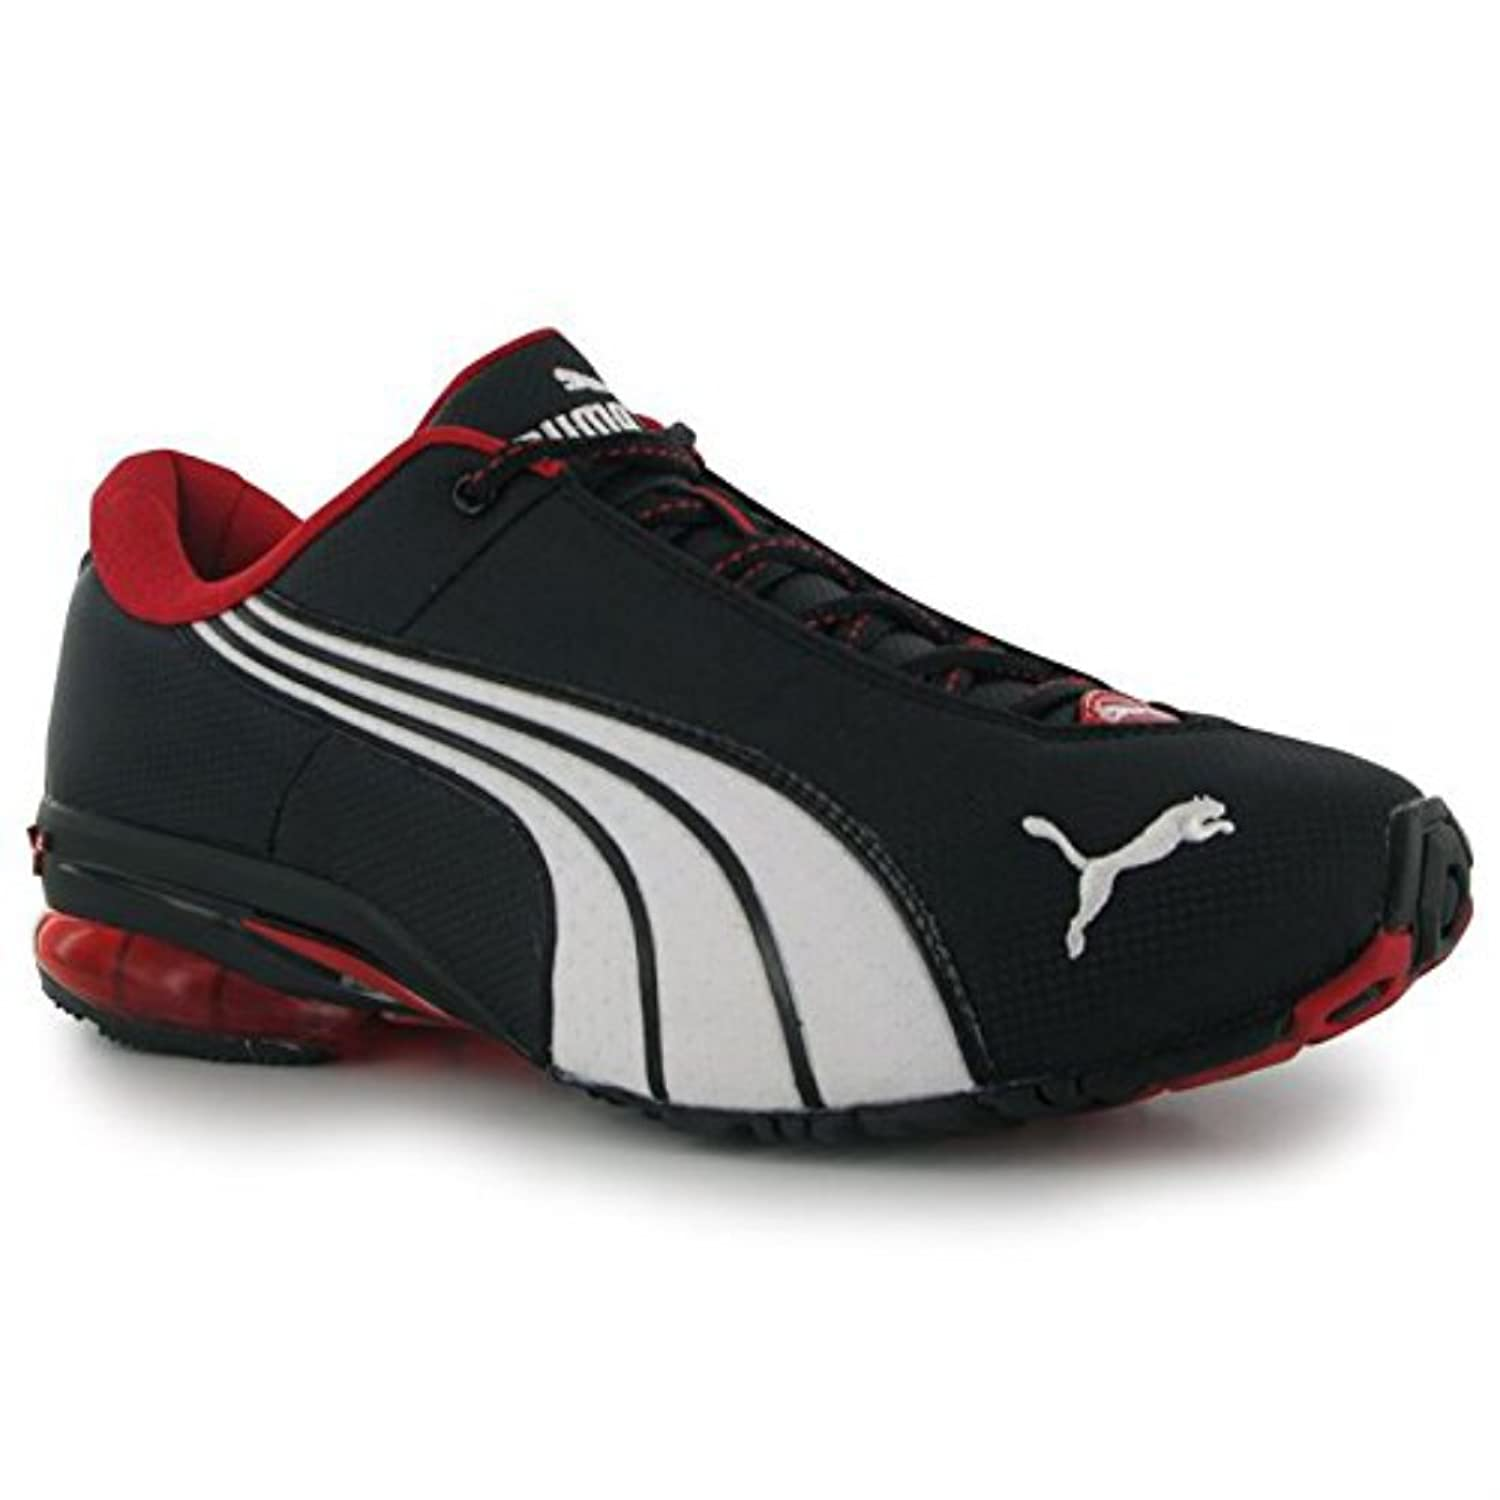 Mens Tennis Shoes Without Laces